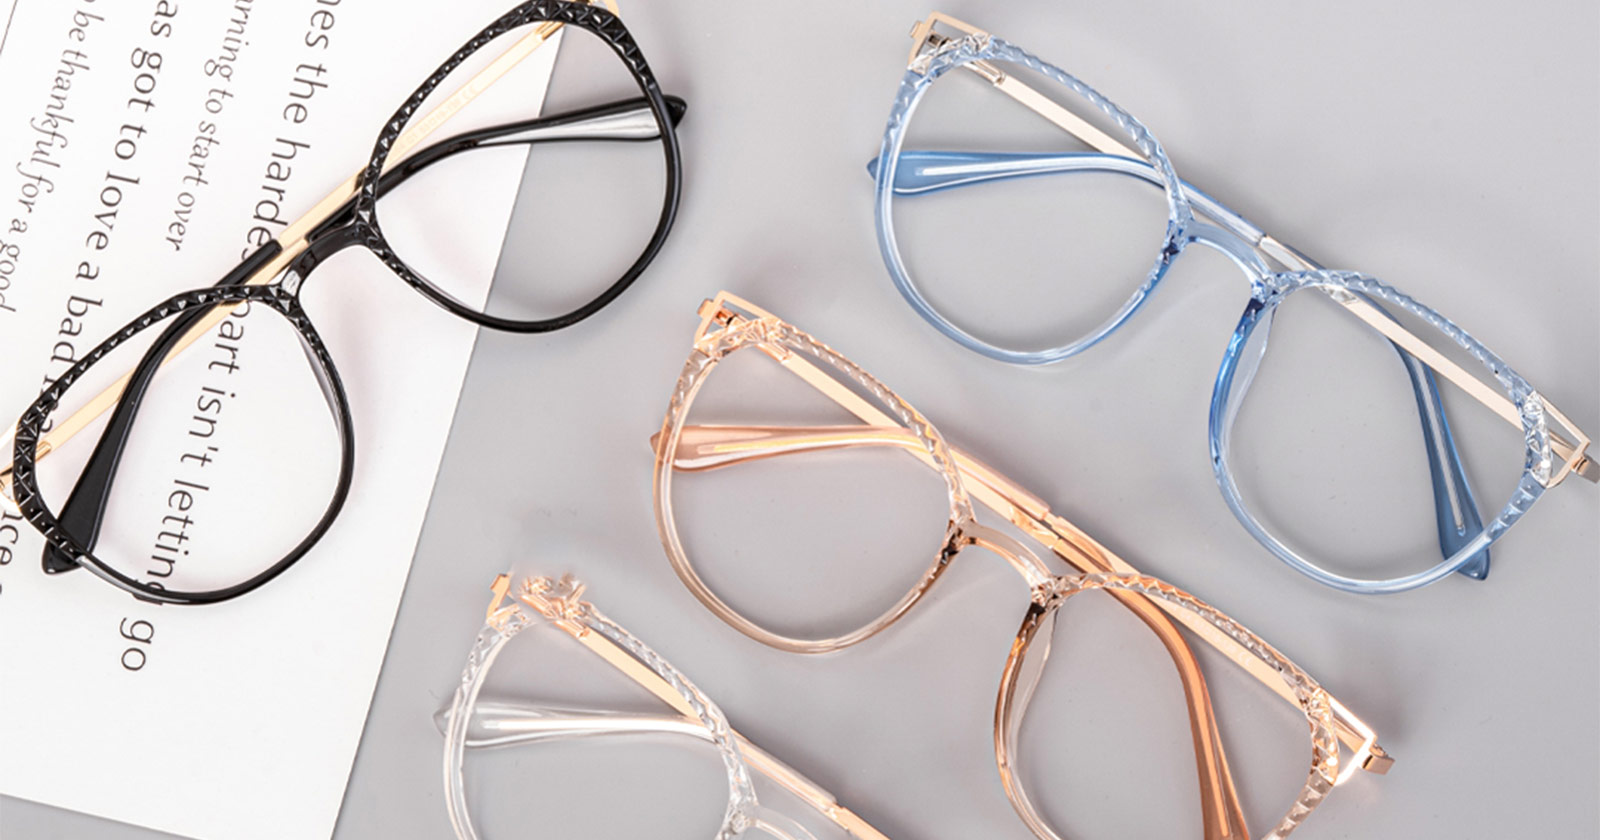 What Are The Most Popular Glasses Frames In The USA